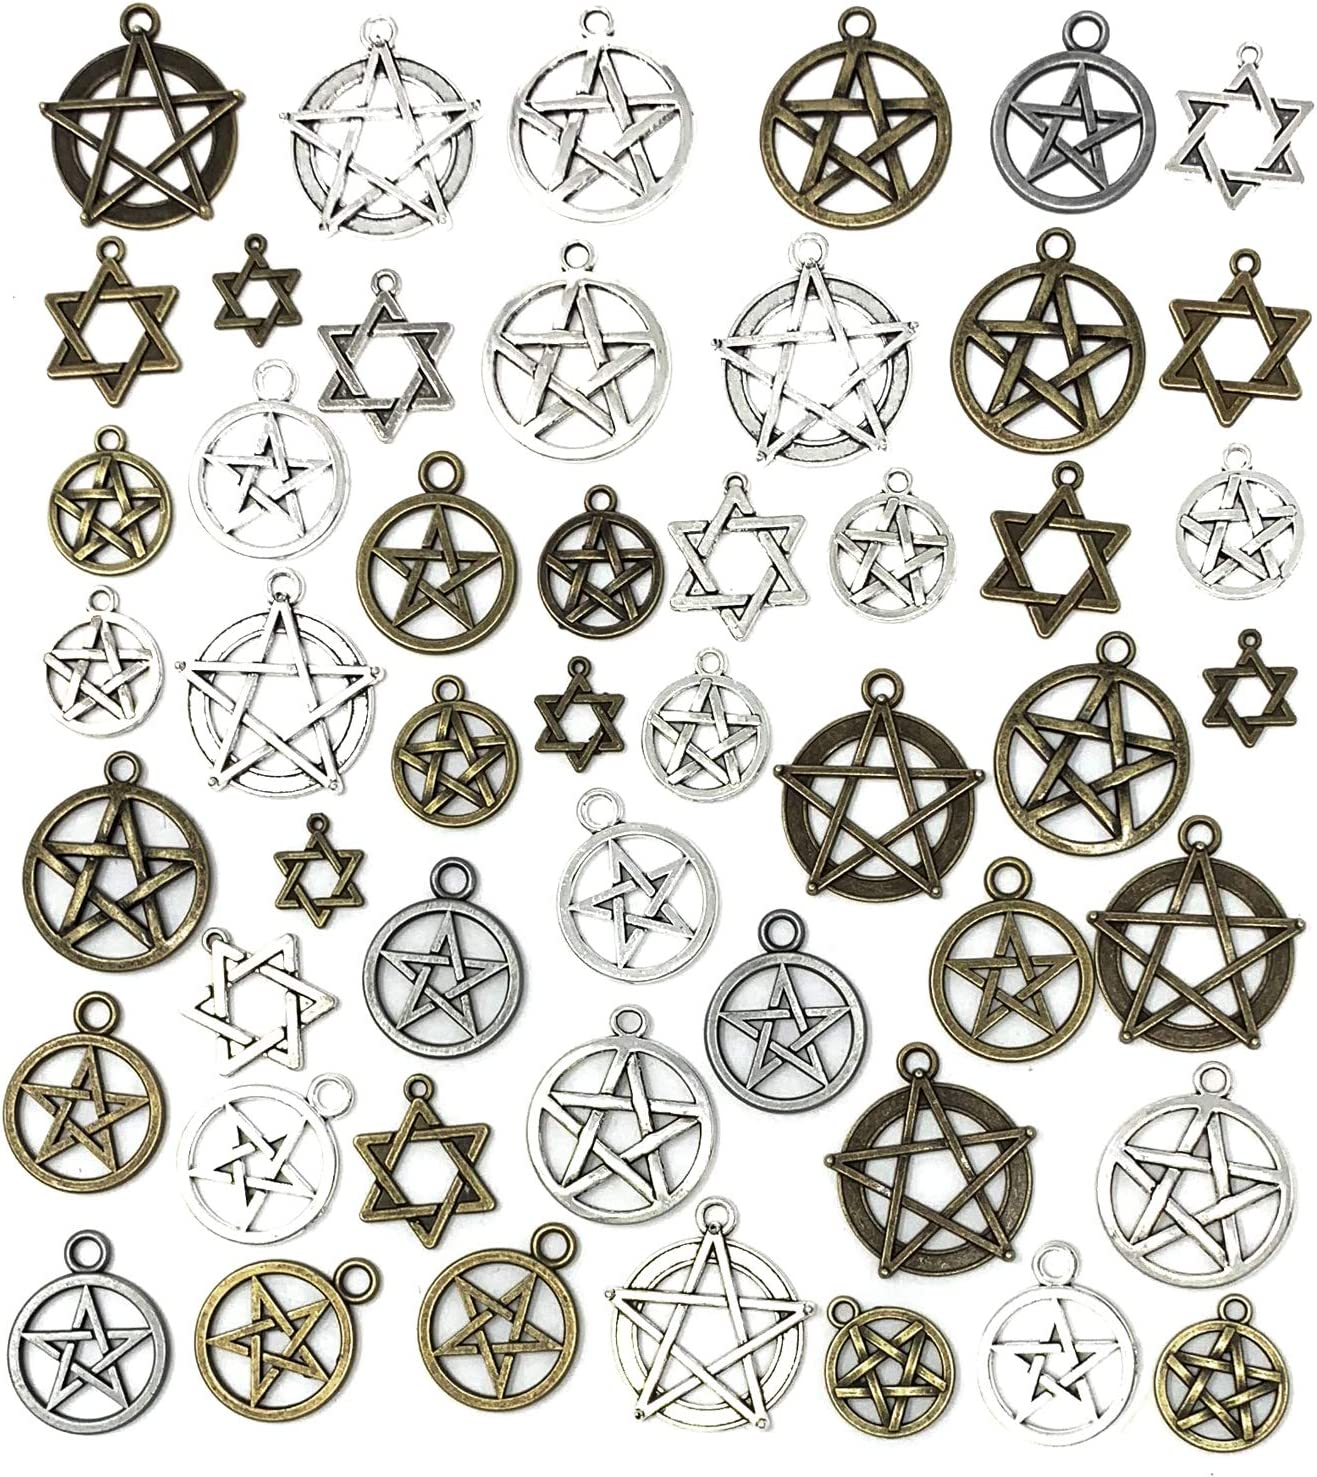 JIALEEY 48pcs Mixed Magic Pentacle Hexagram Star Protection Lucky Charms Pendants DIY for Necklace Bracelet Jewelry Making, Antique Silver Bronze